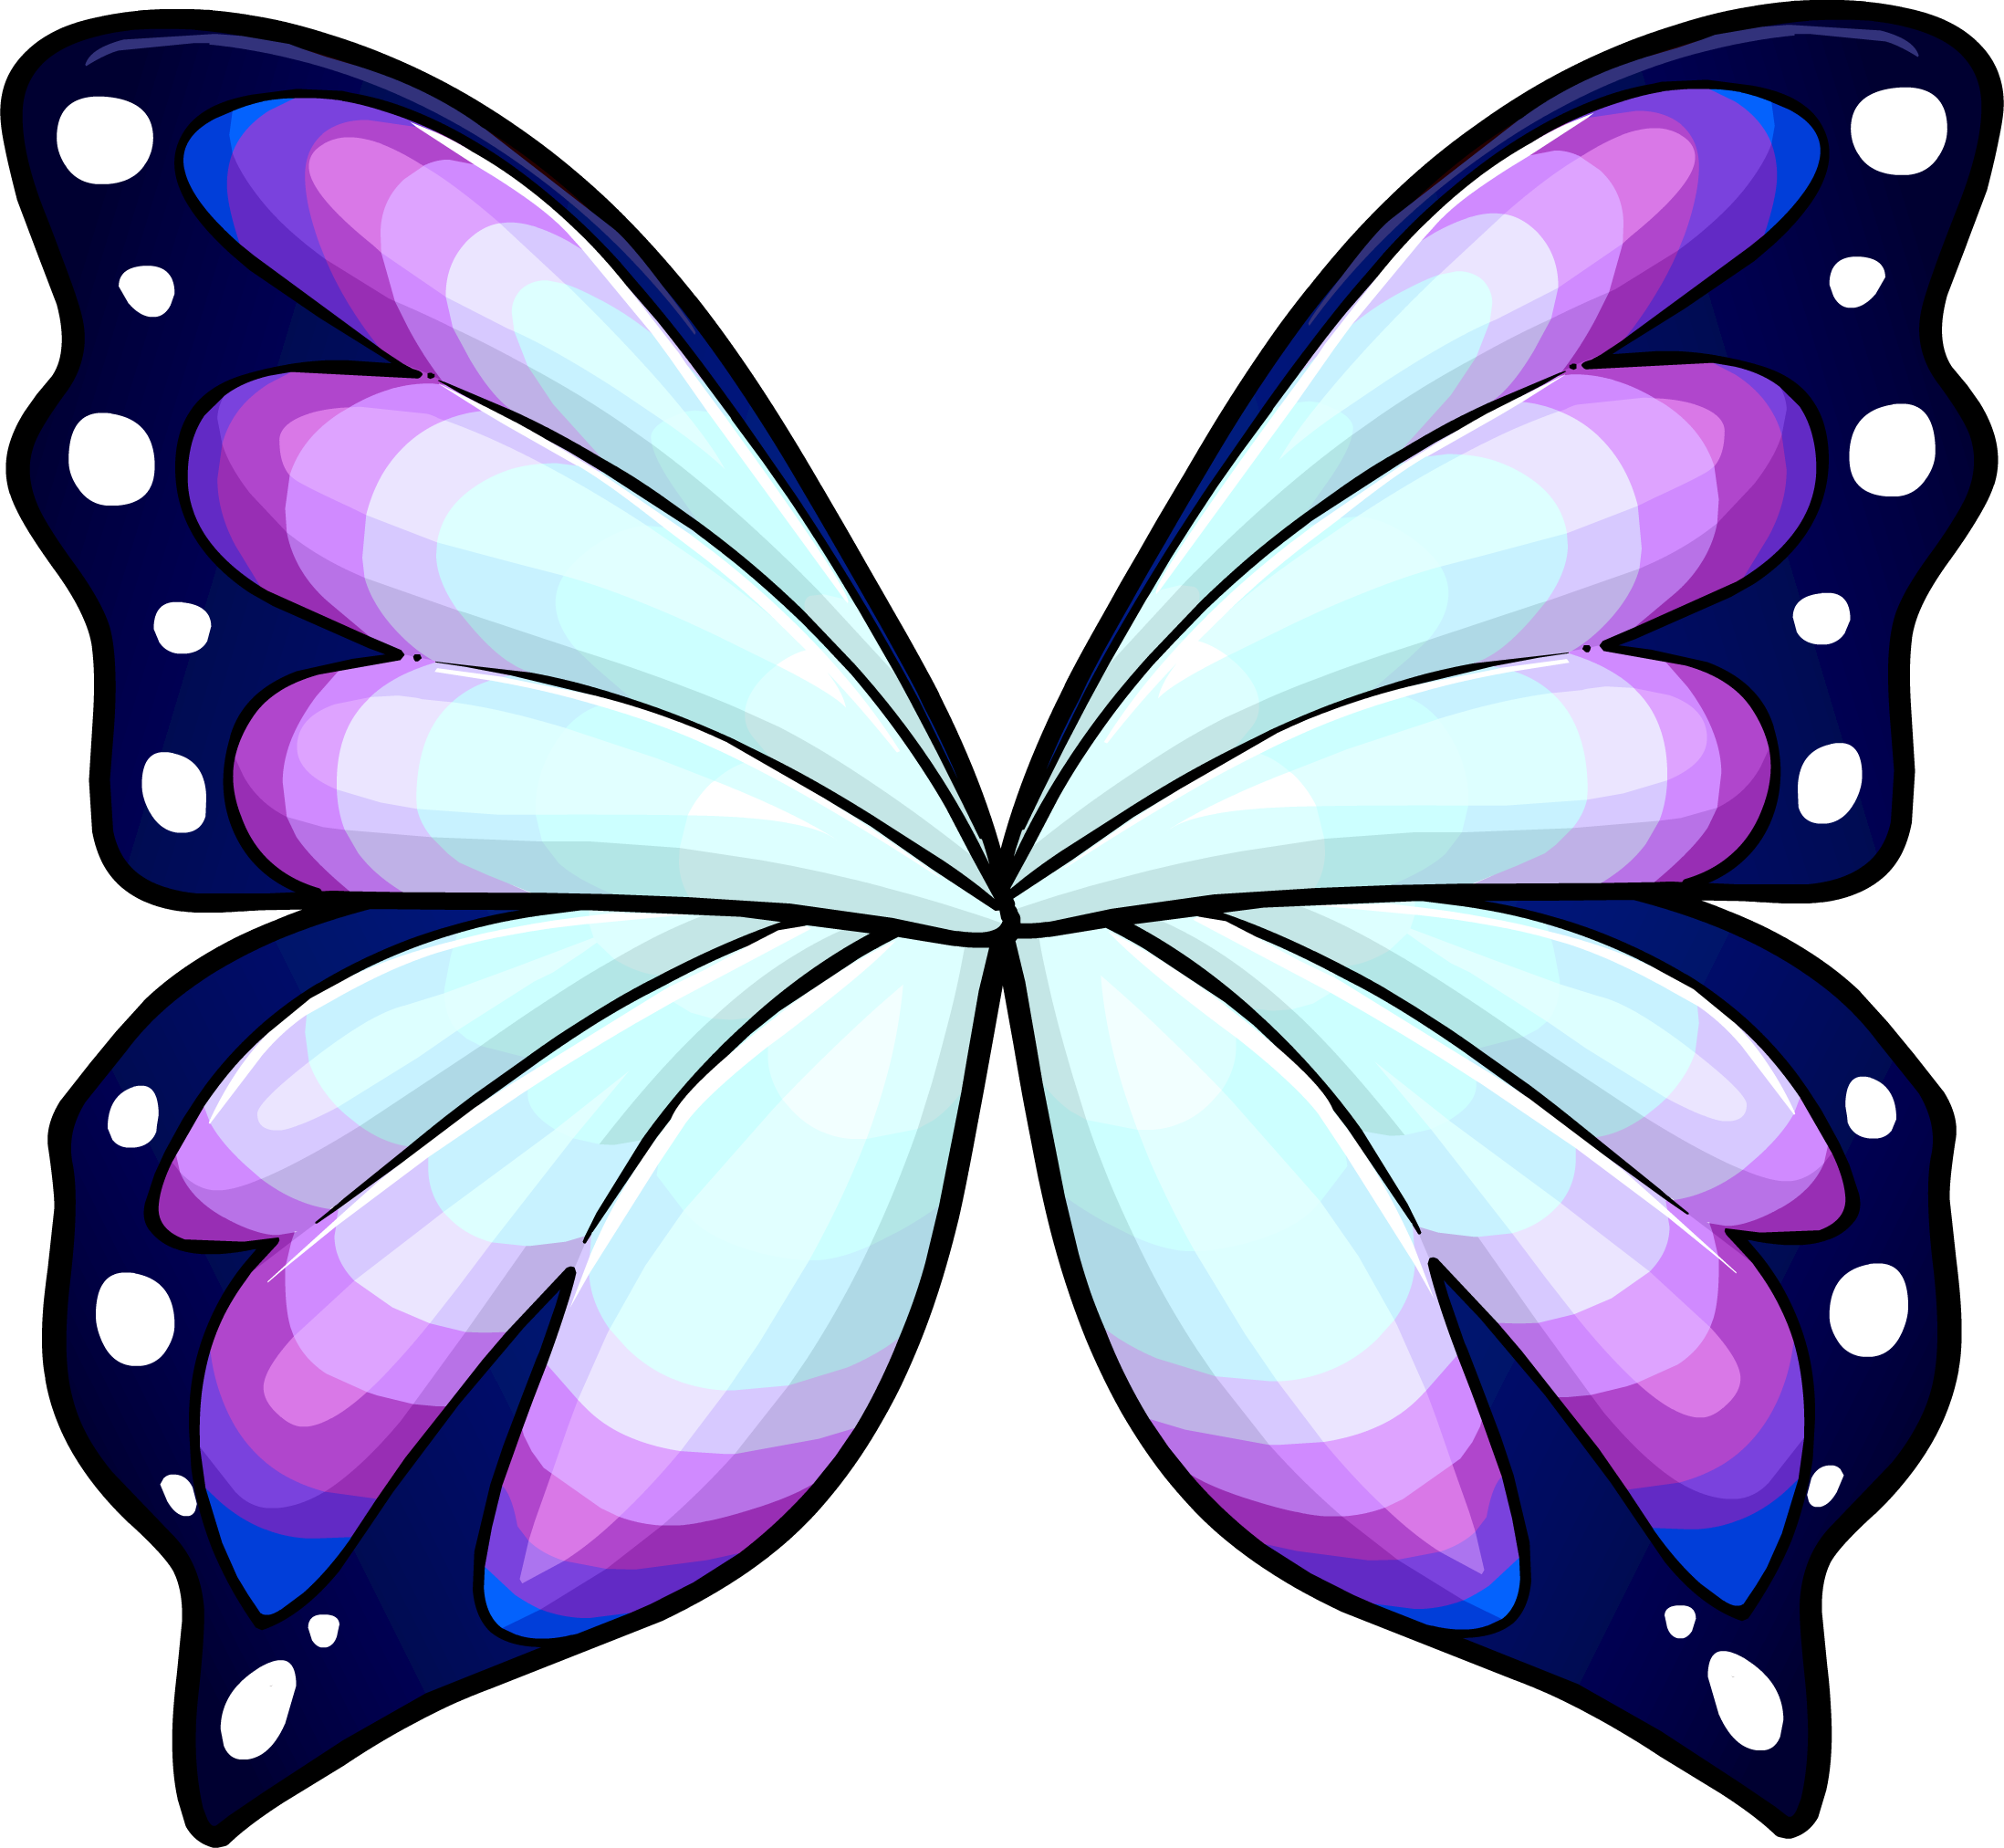 Butterfly wing png. Wings drawing at getdrawings